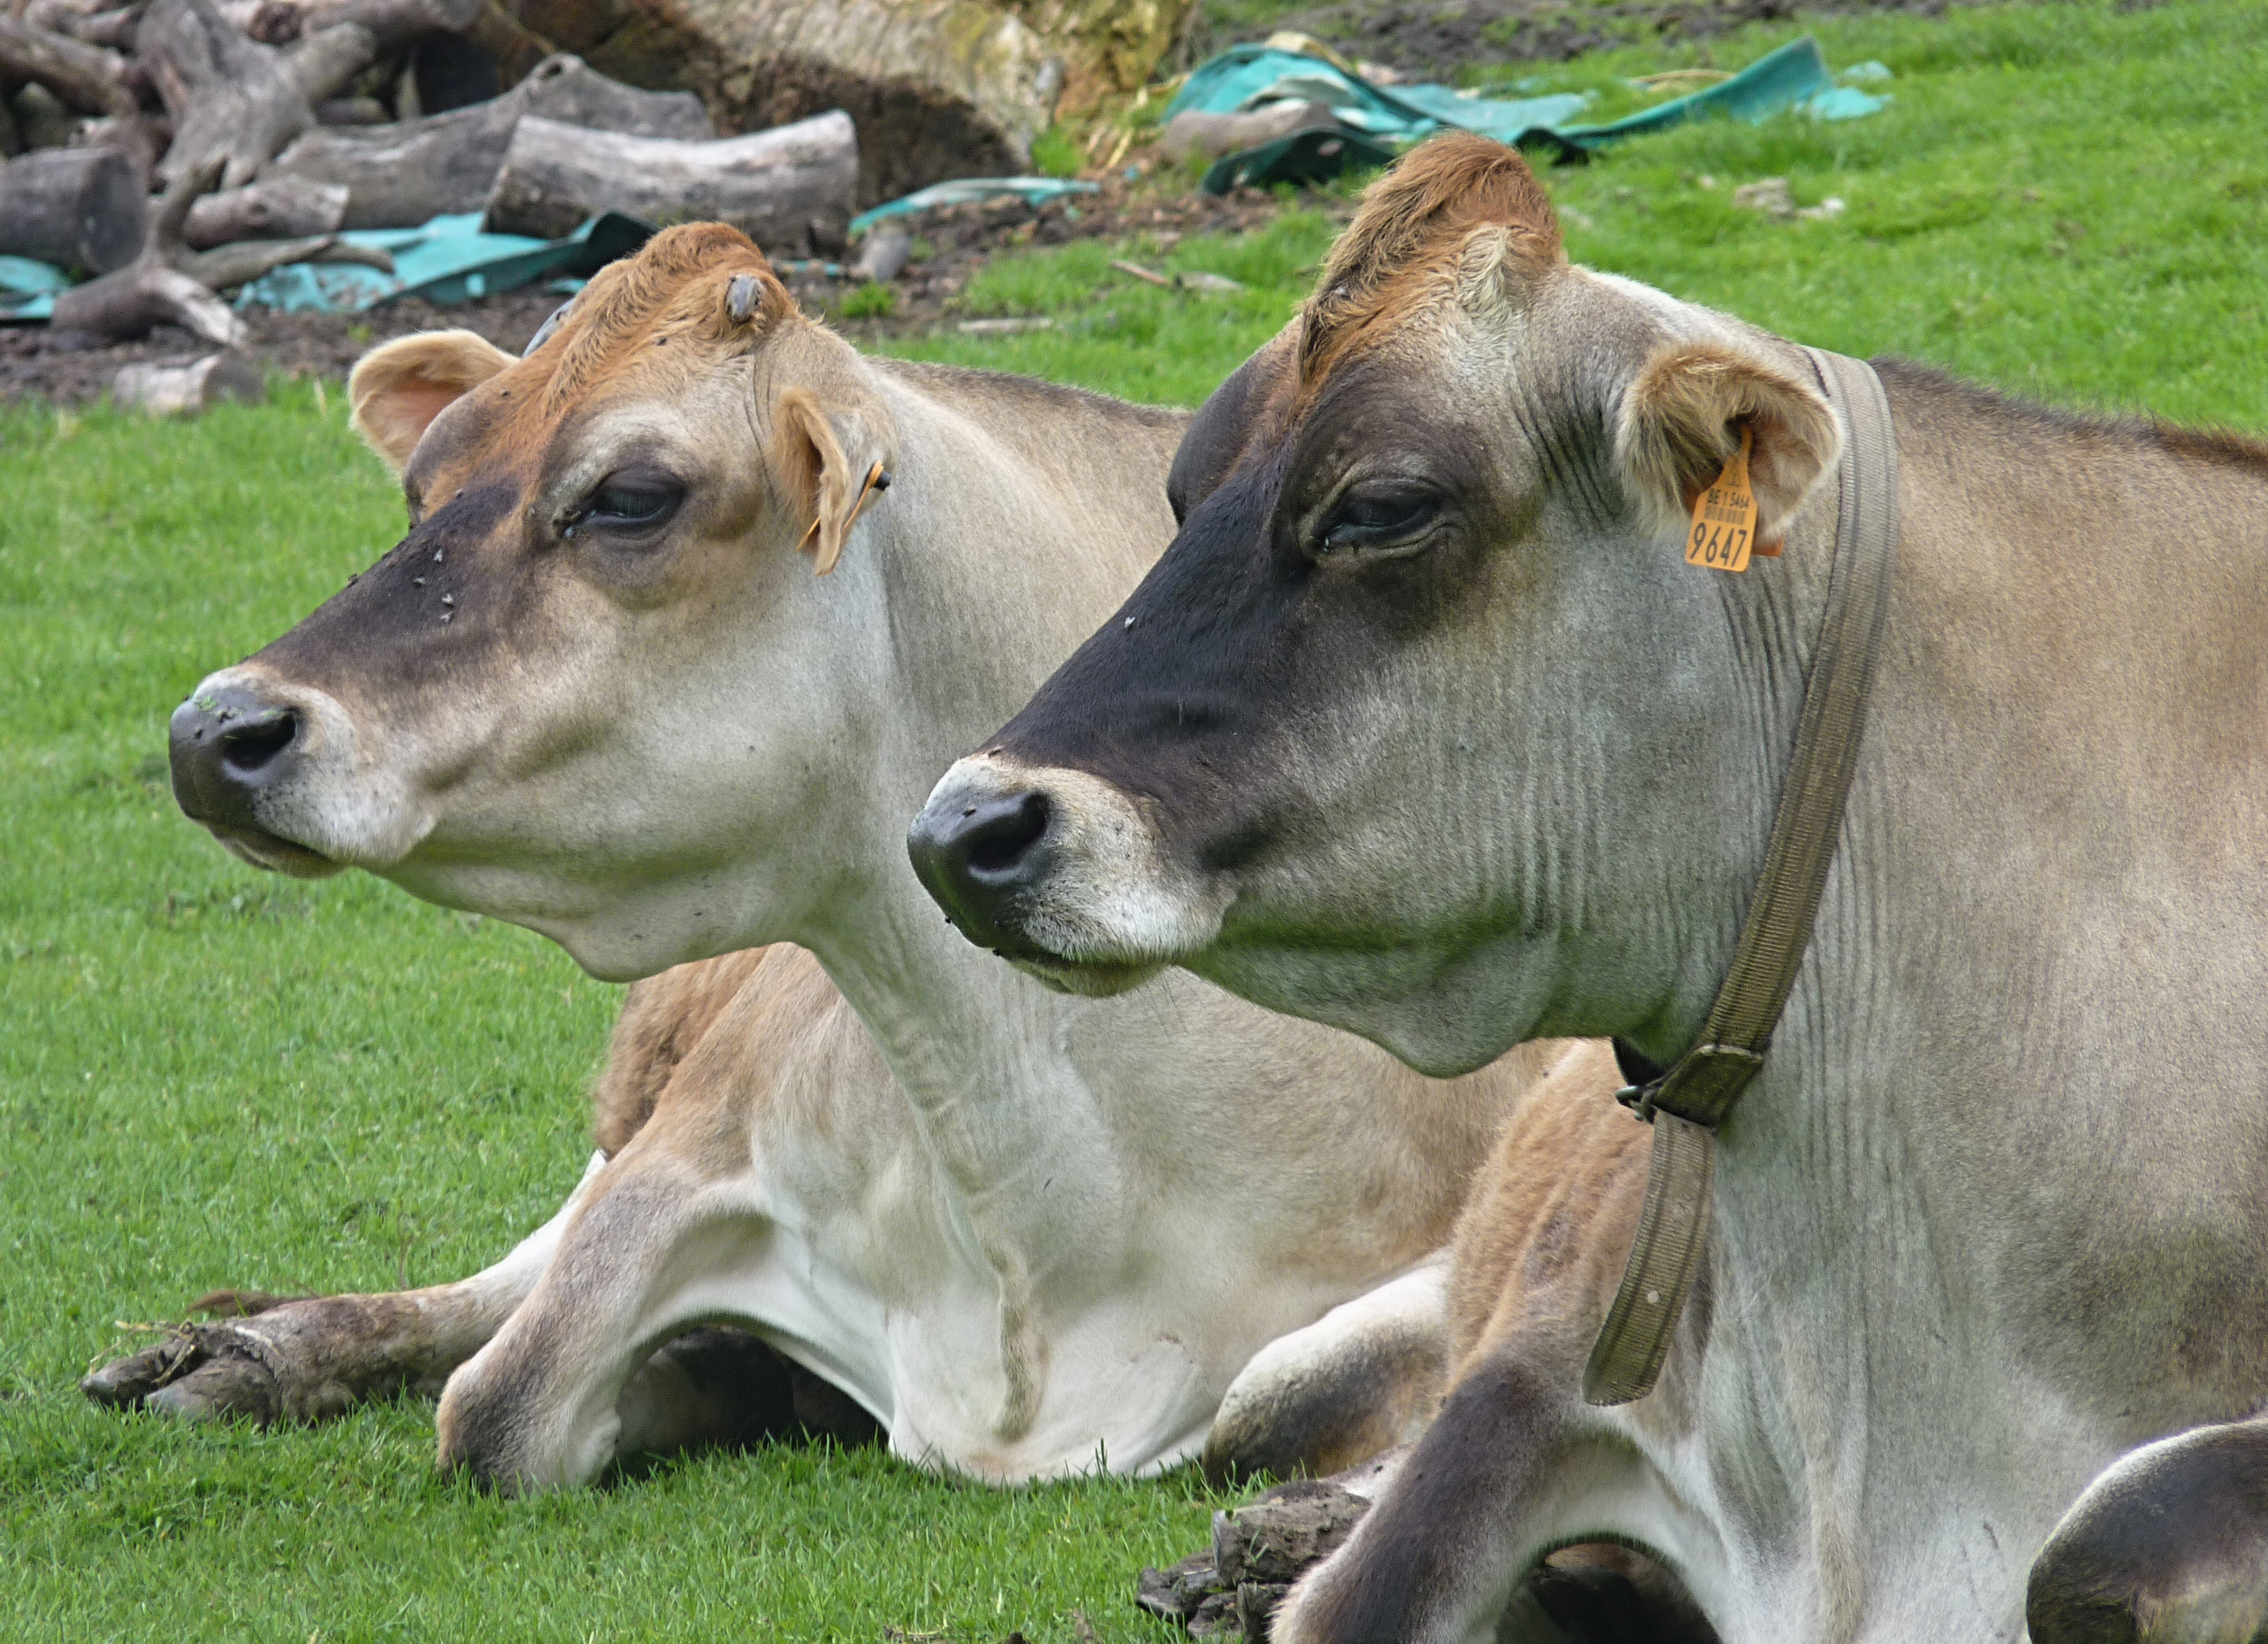 Jersey cow Stock Photos, Royalty Free Jersey cow Images Jersey cow pictures free